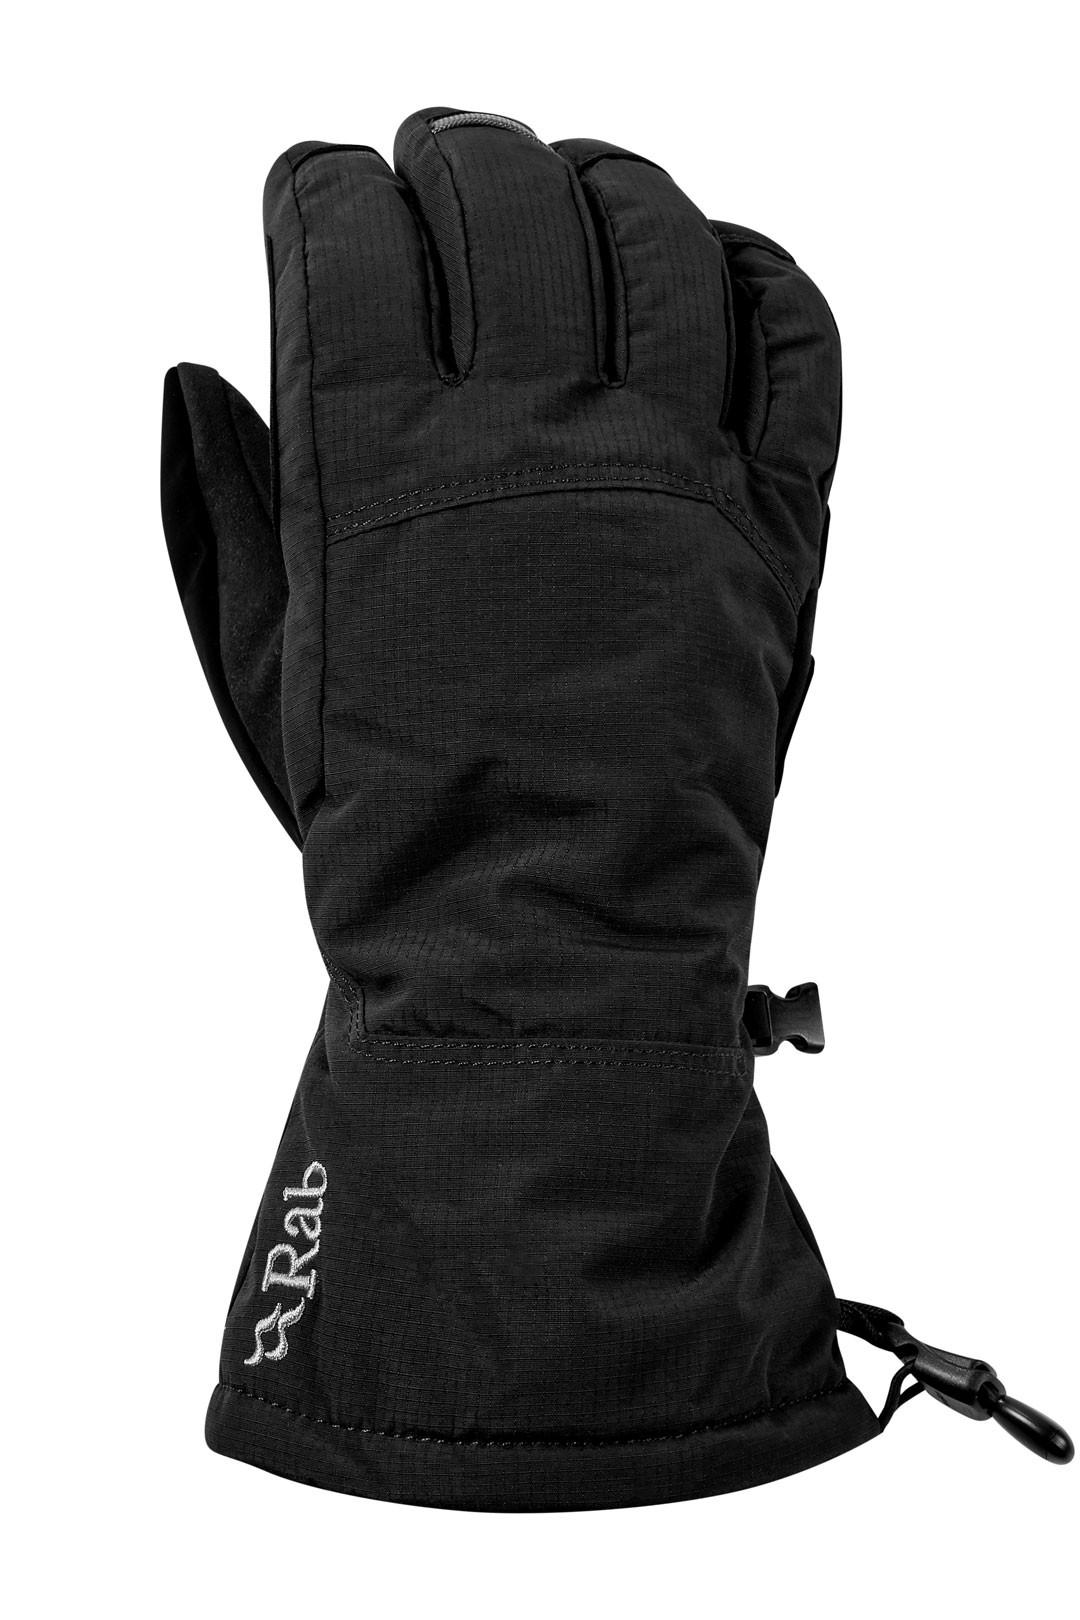 Rab Storm Glove Mens - Black